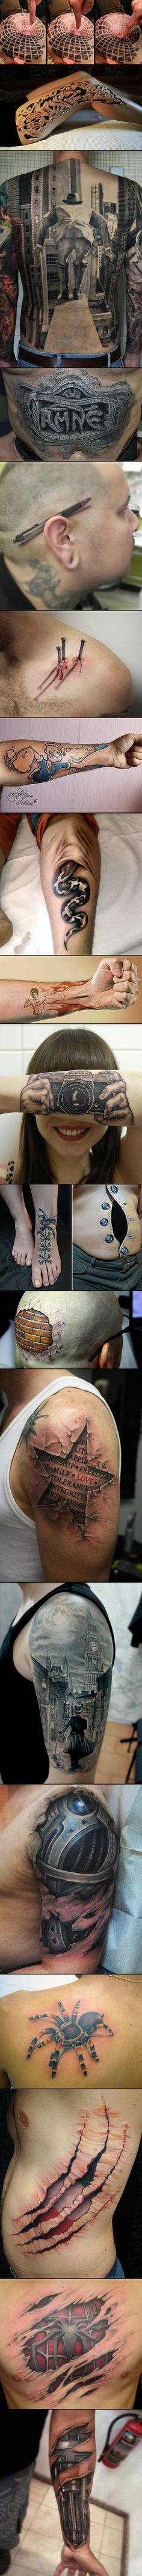 Here are some cool optical illusion 3D tattoos that will boggle your mind.